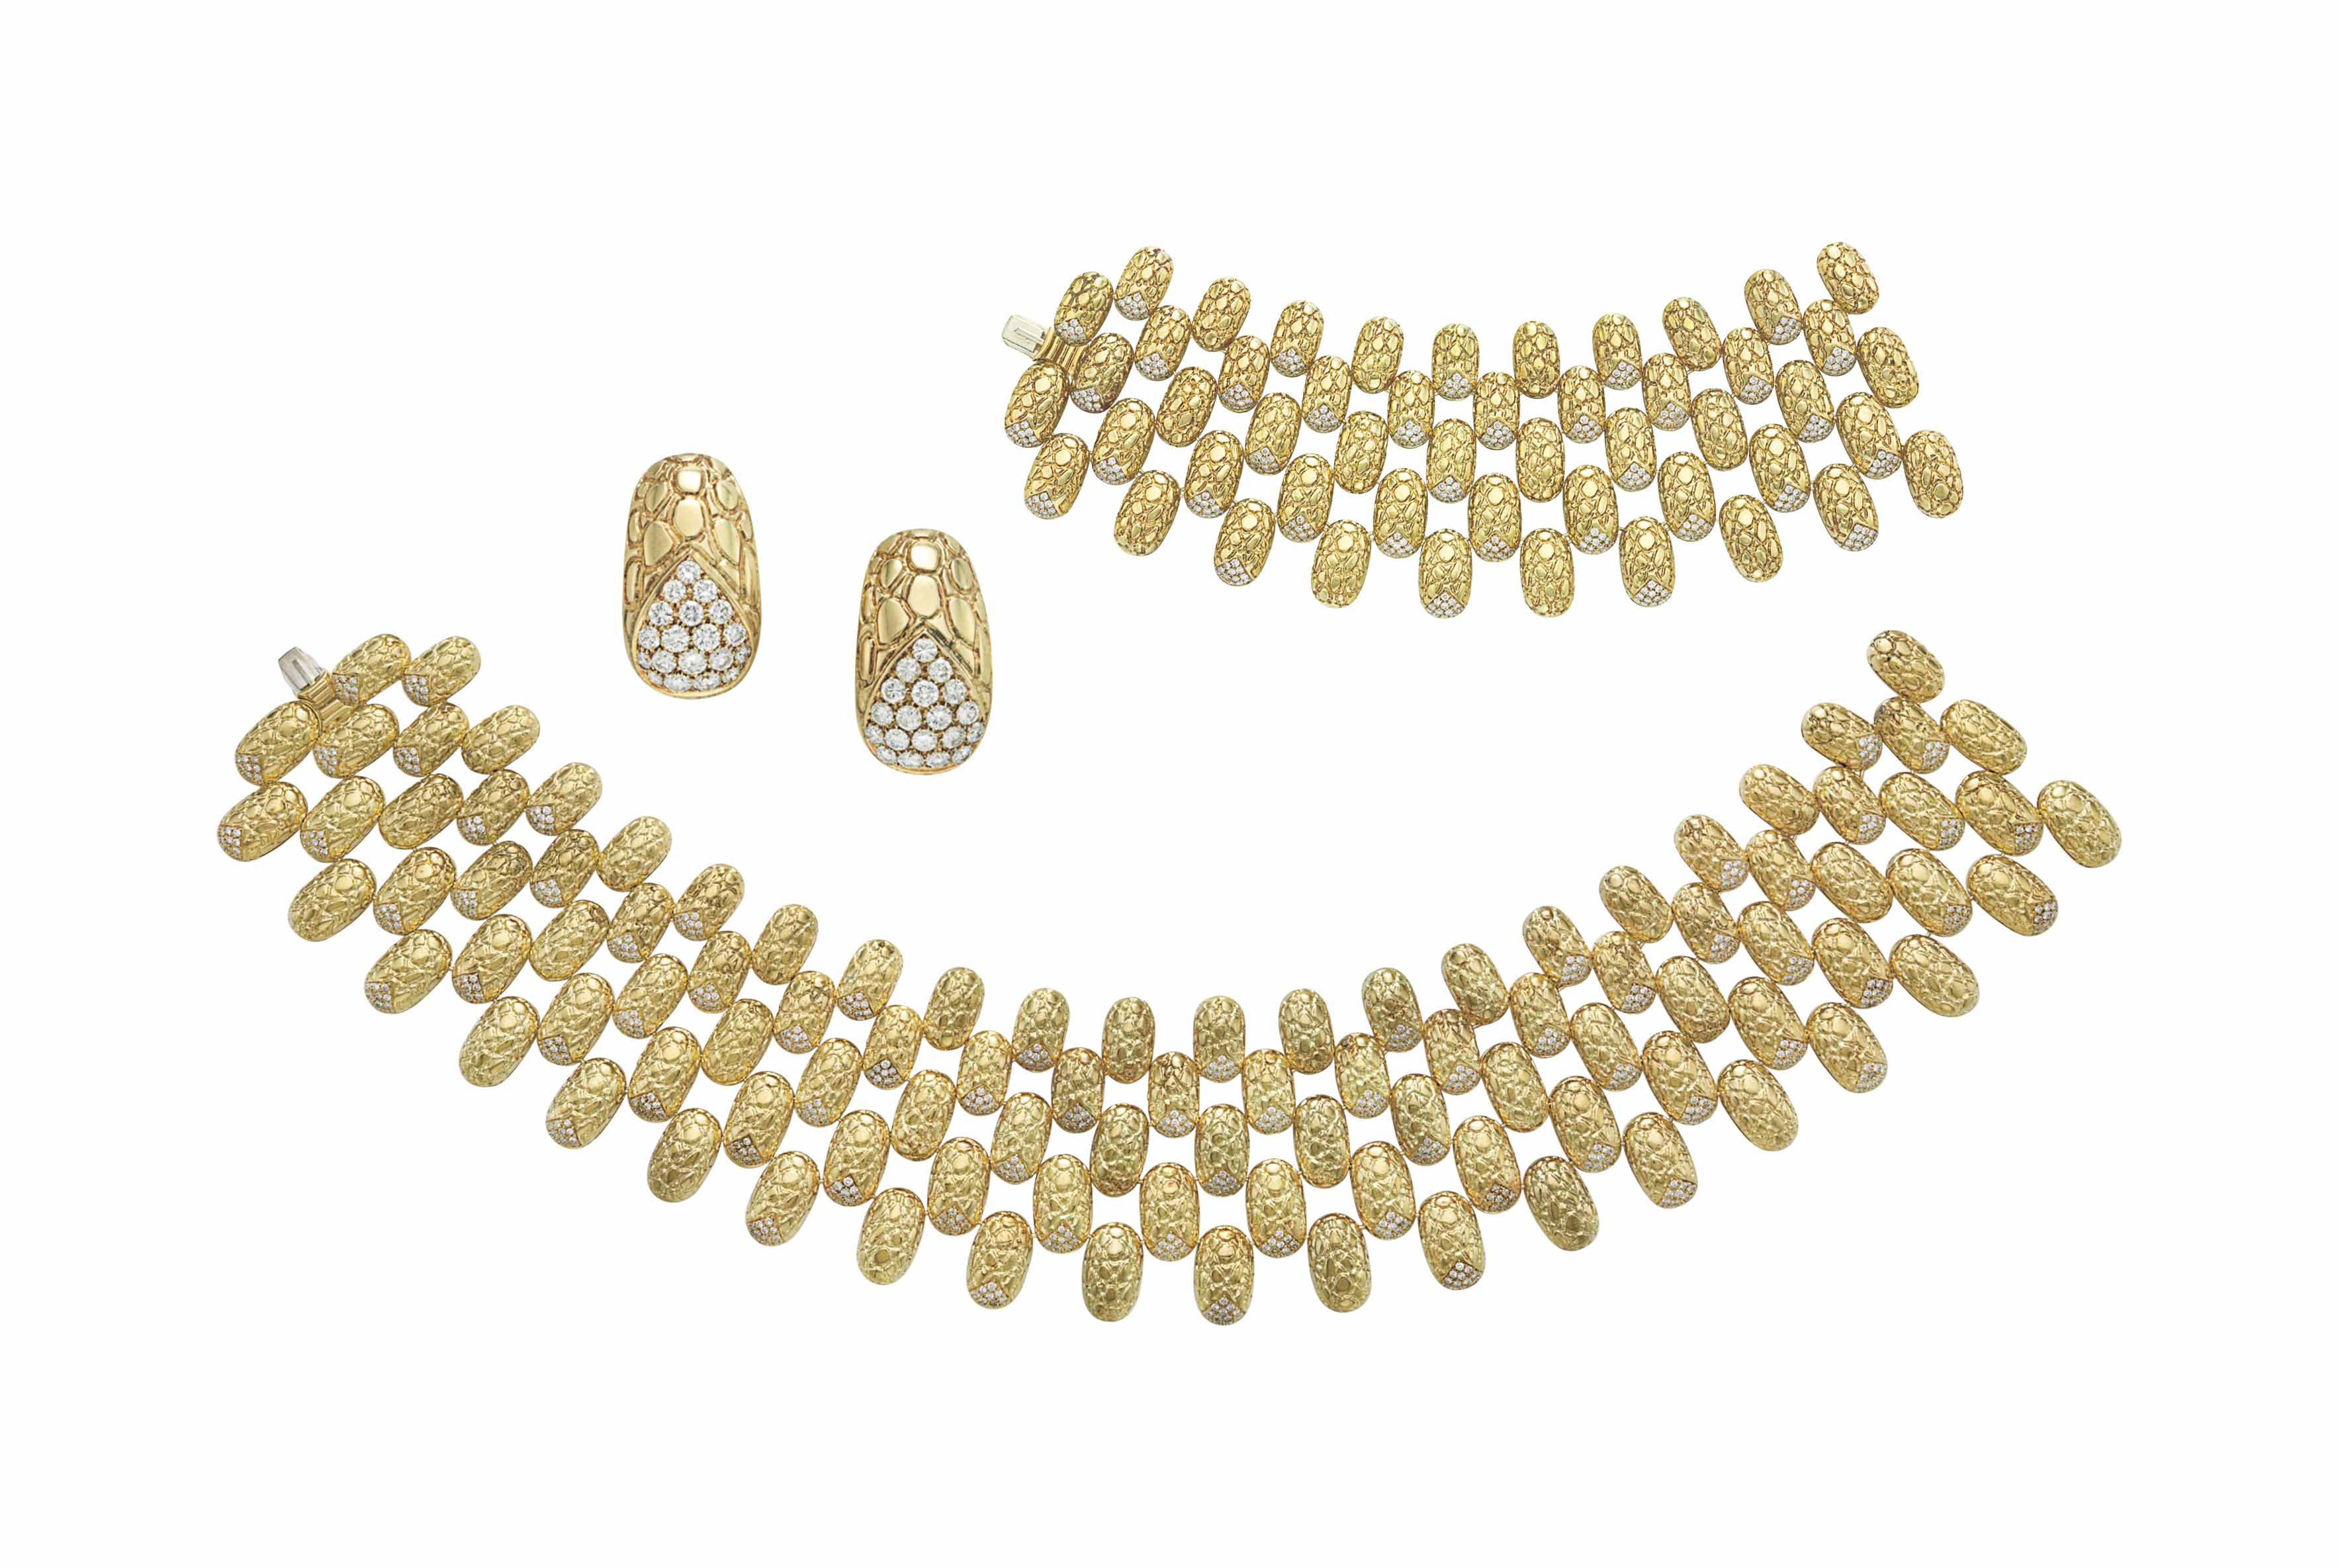 A SUITE OF GOLD AND DIAMOND JEWELRY, BY GUCCI